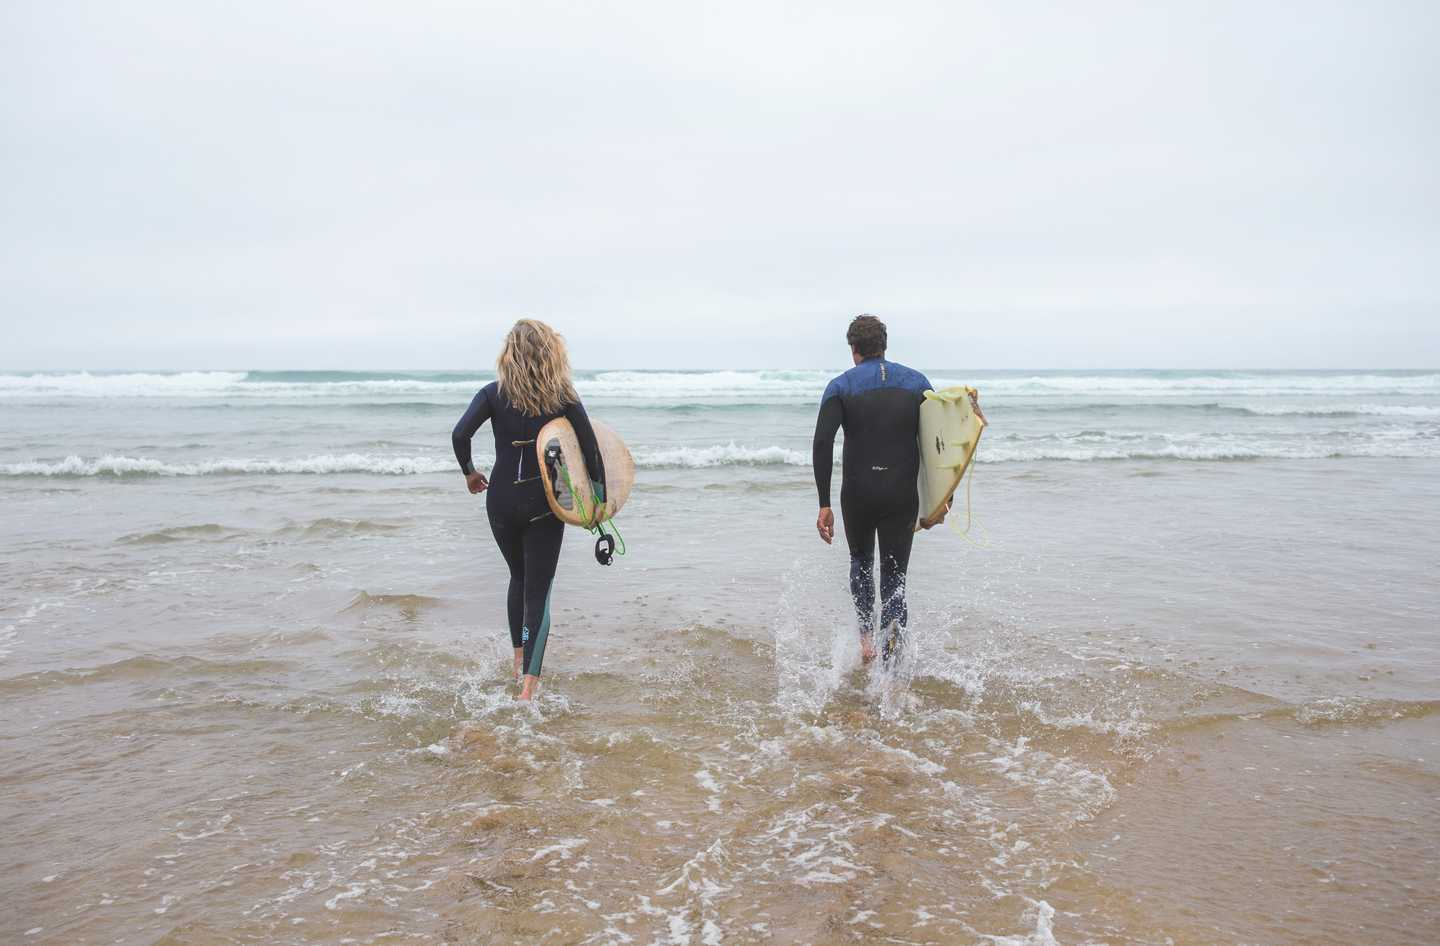 A couple surfing at Perran Sands